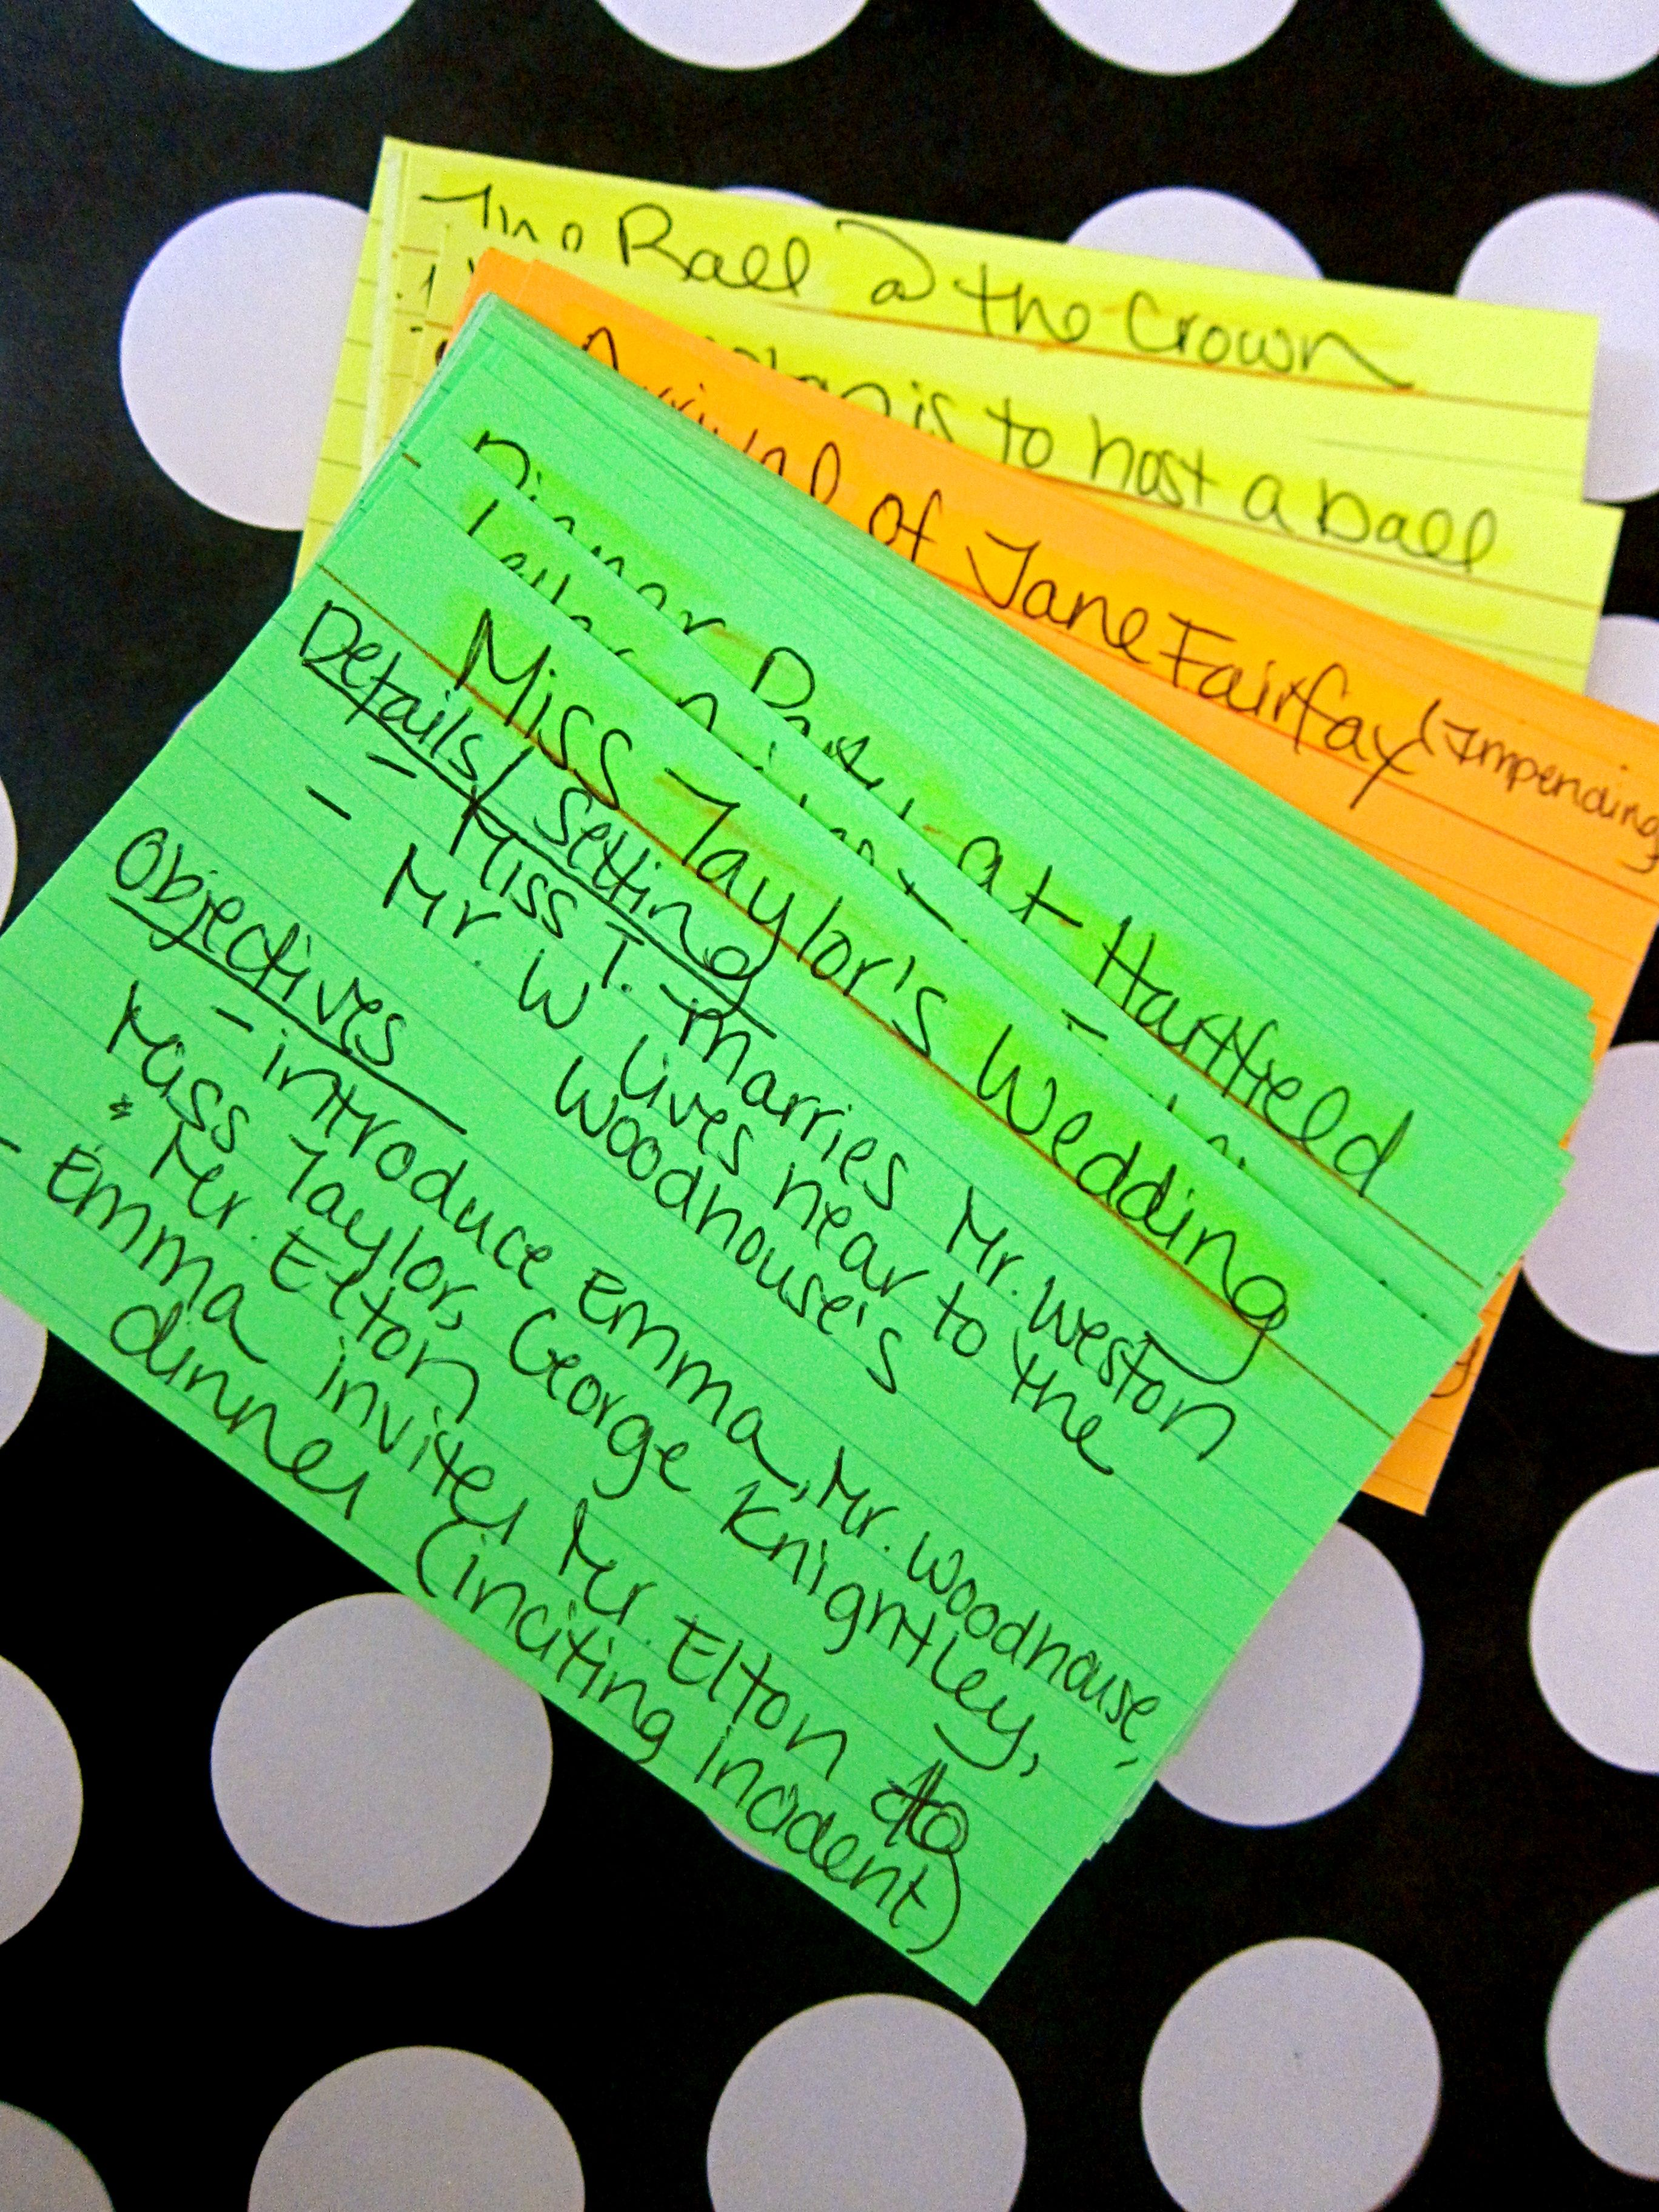 Nanowrimo Prep Plotting Your Wip With Index Cards